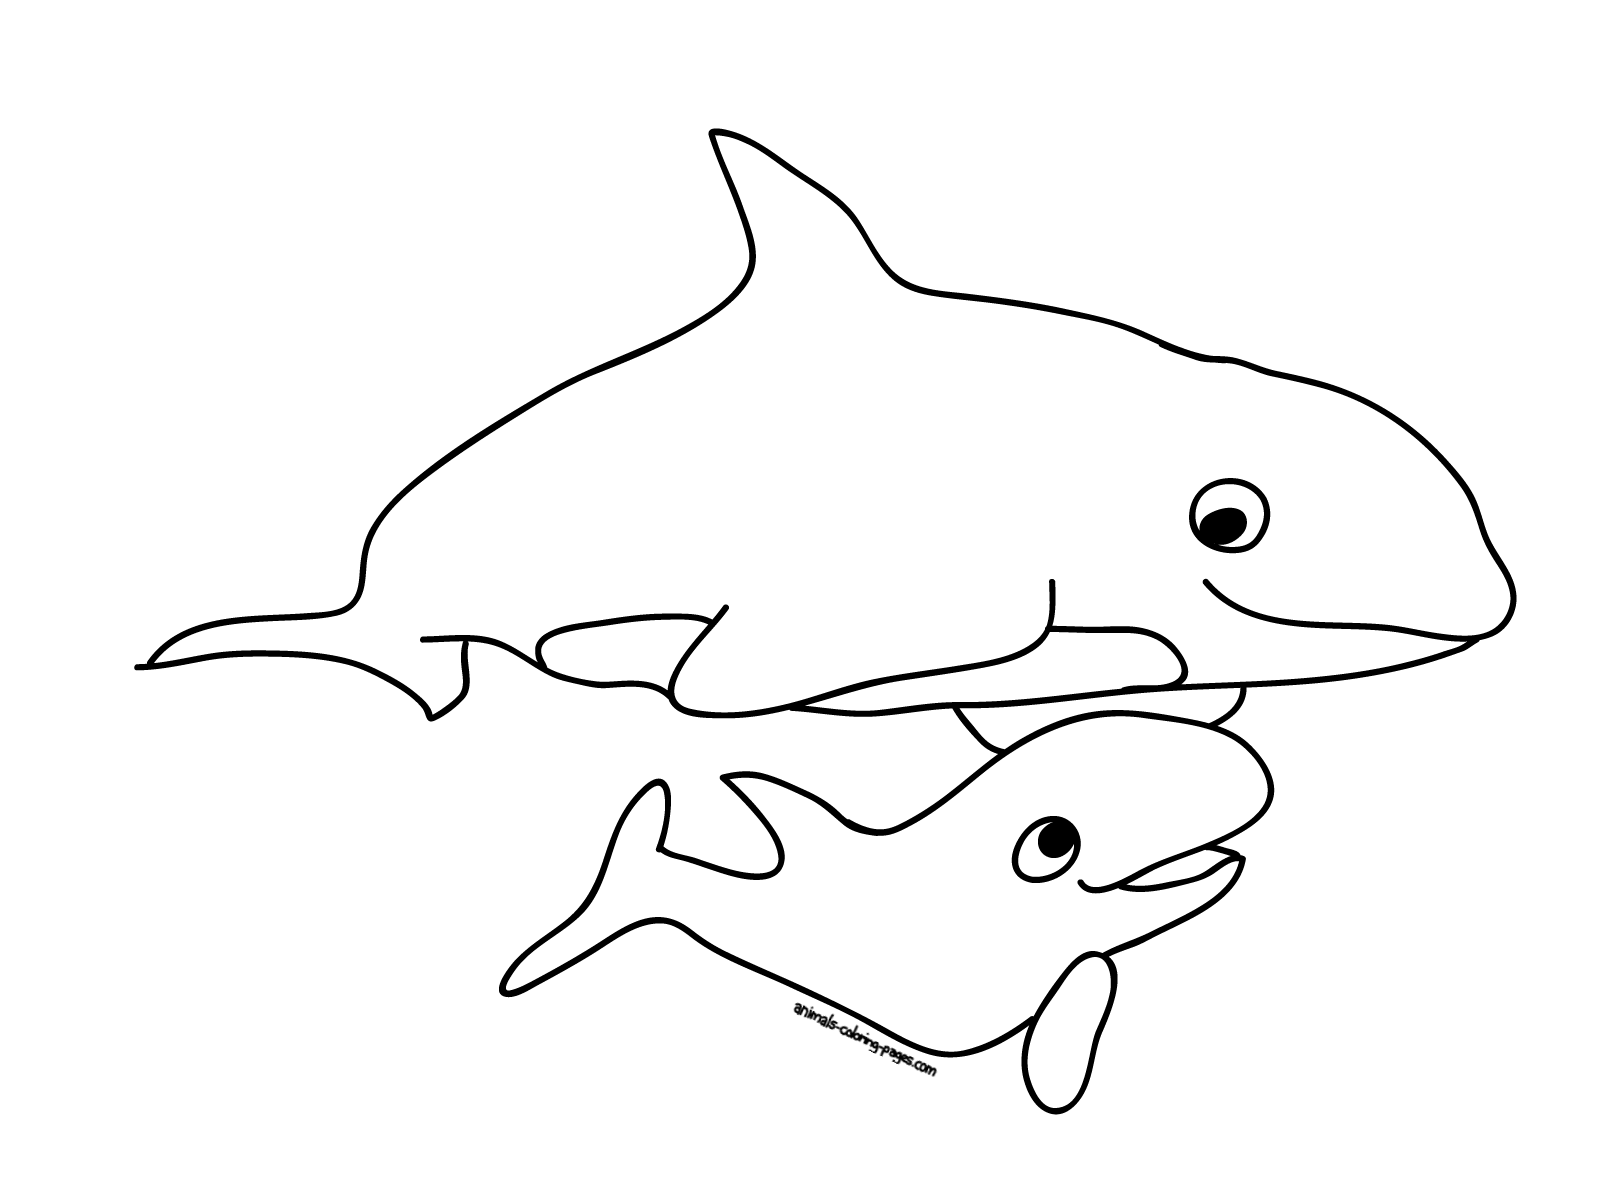 Coloring pages whales - 44 Best Whales Coloring Pages Gianfreda Net